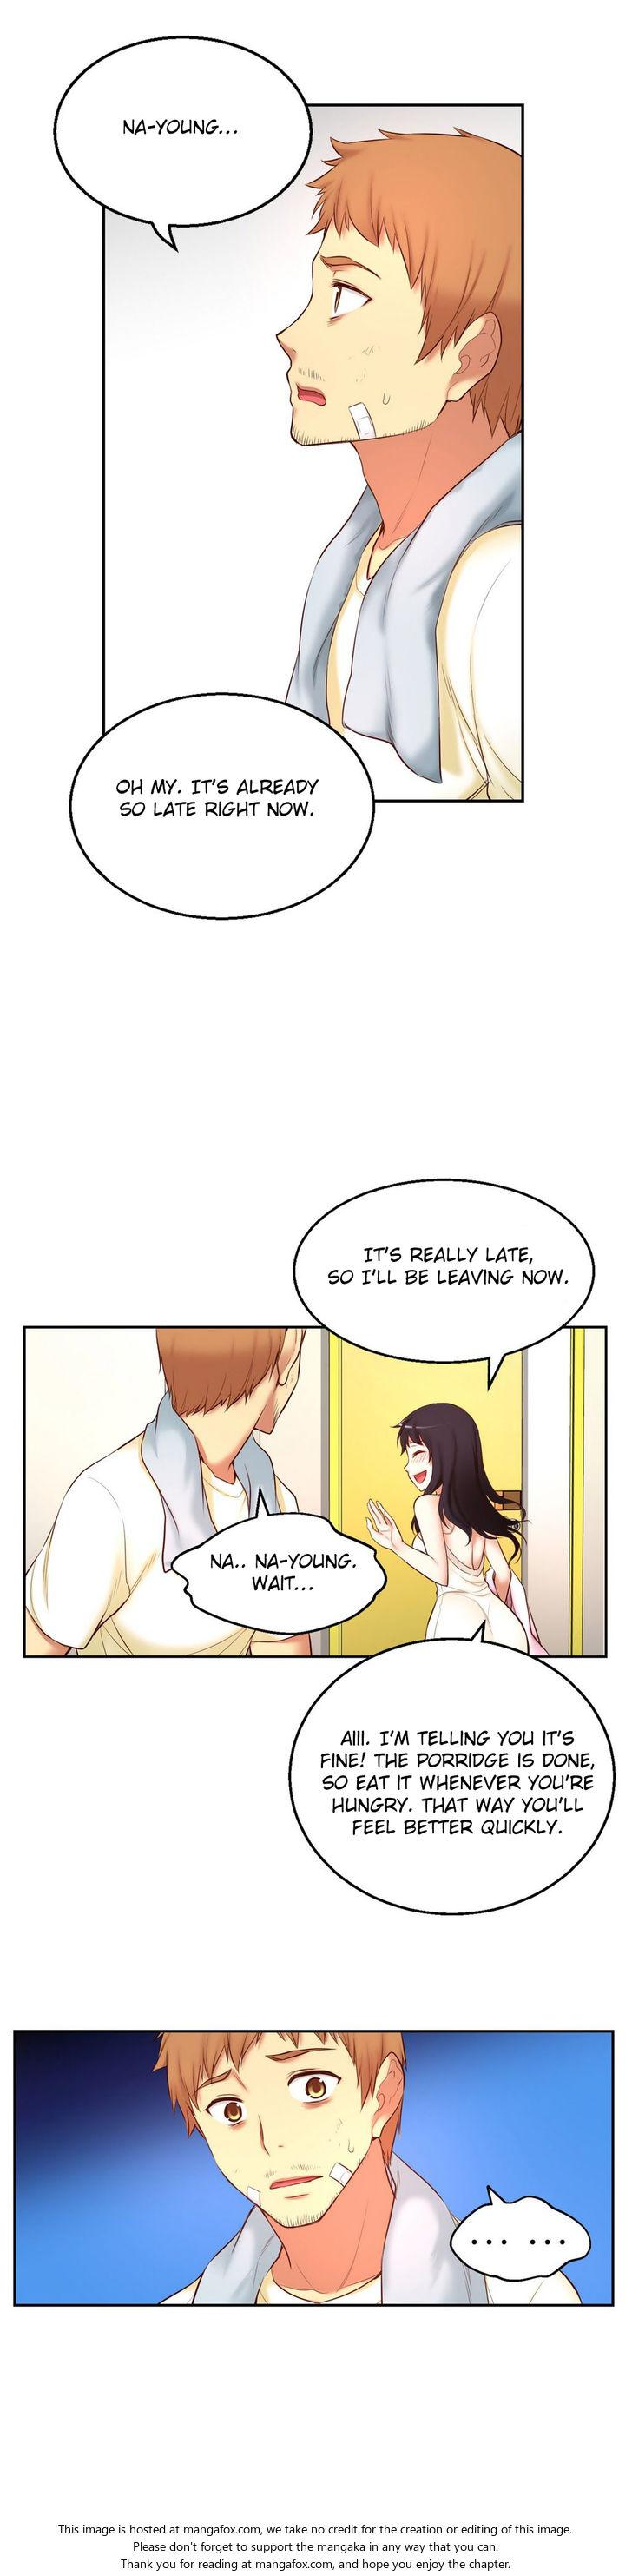 [Donggul Gom] She is Young (English) Part 1/2 1322